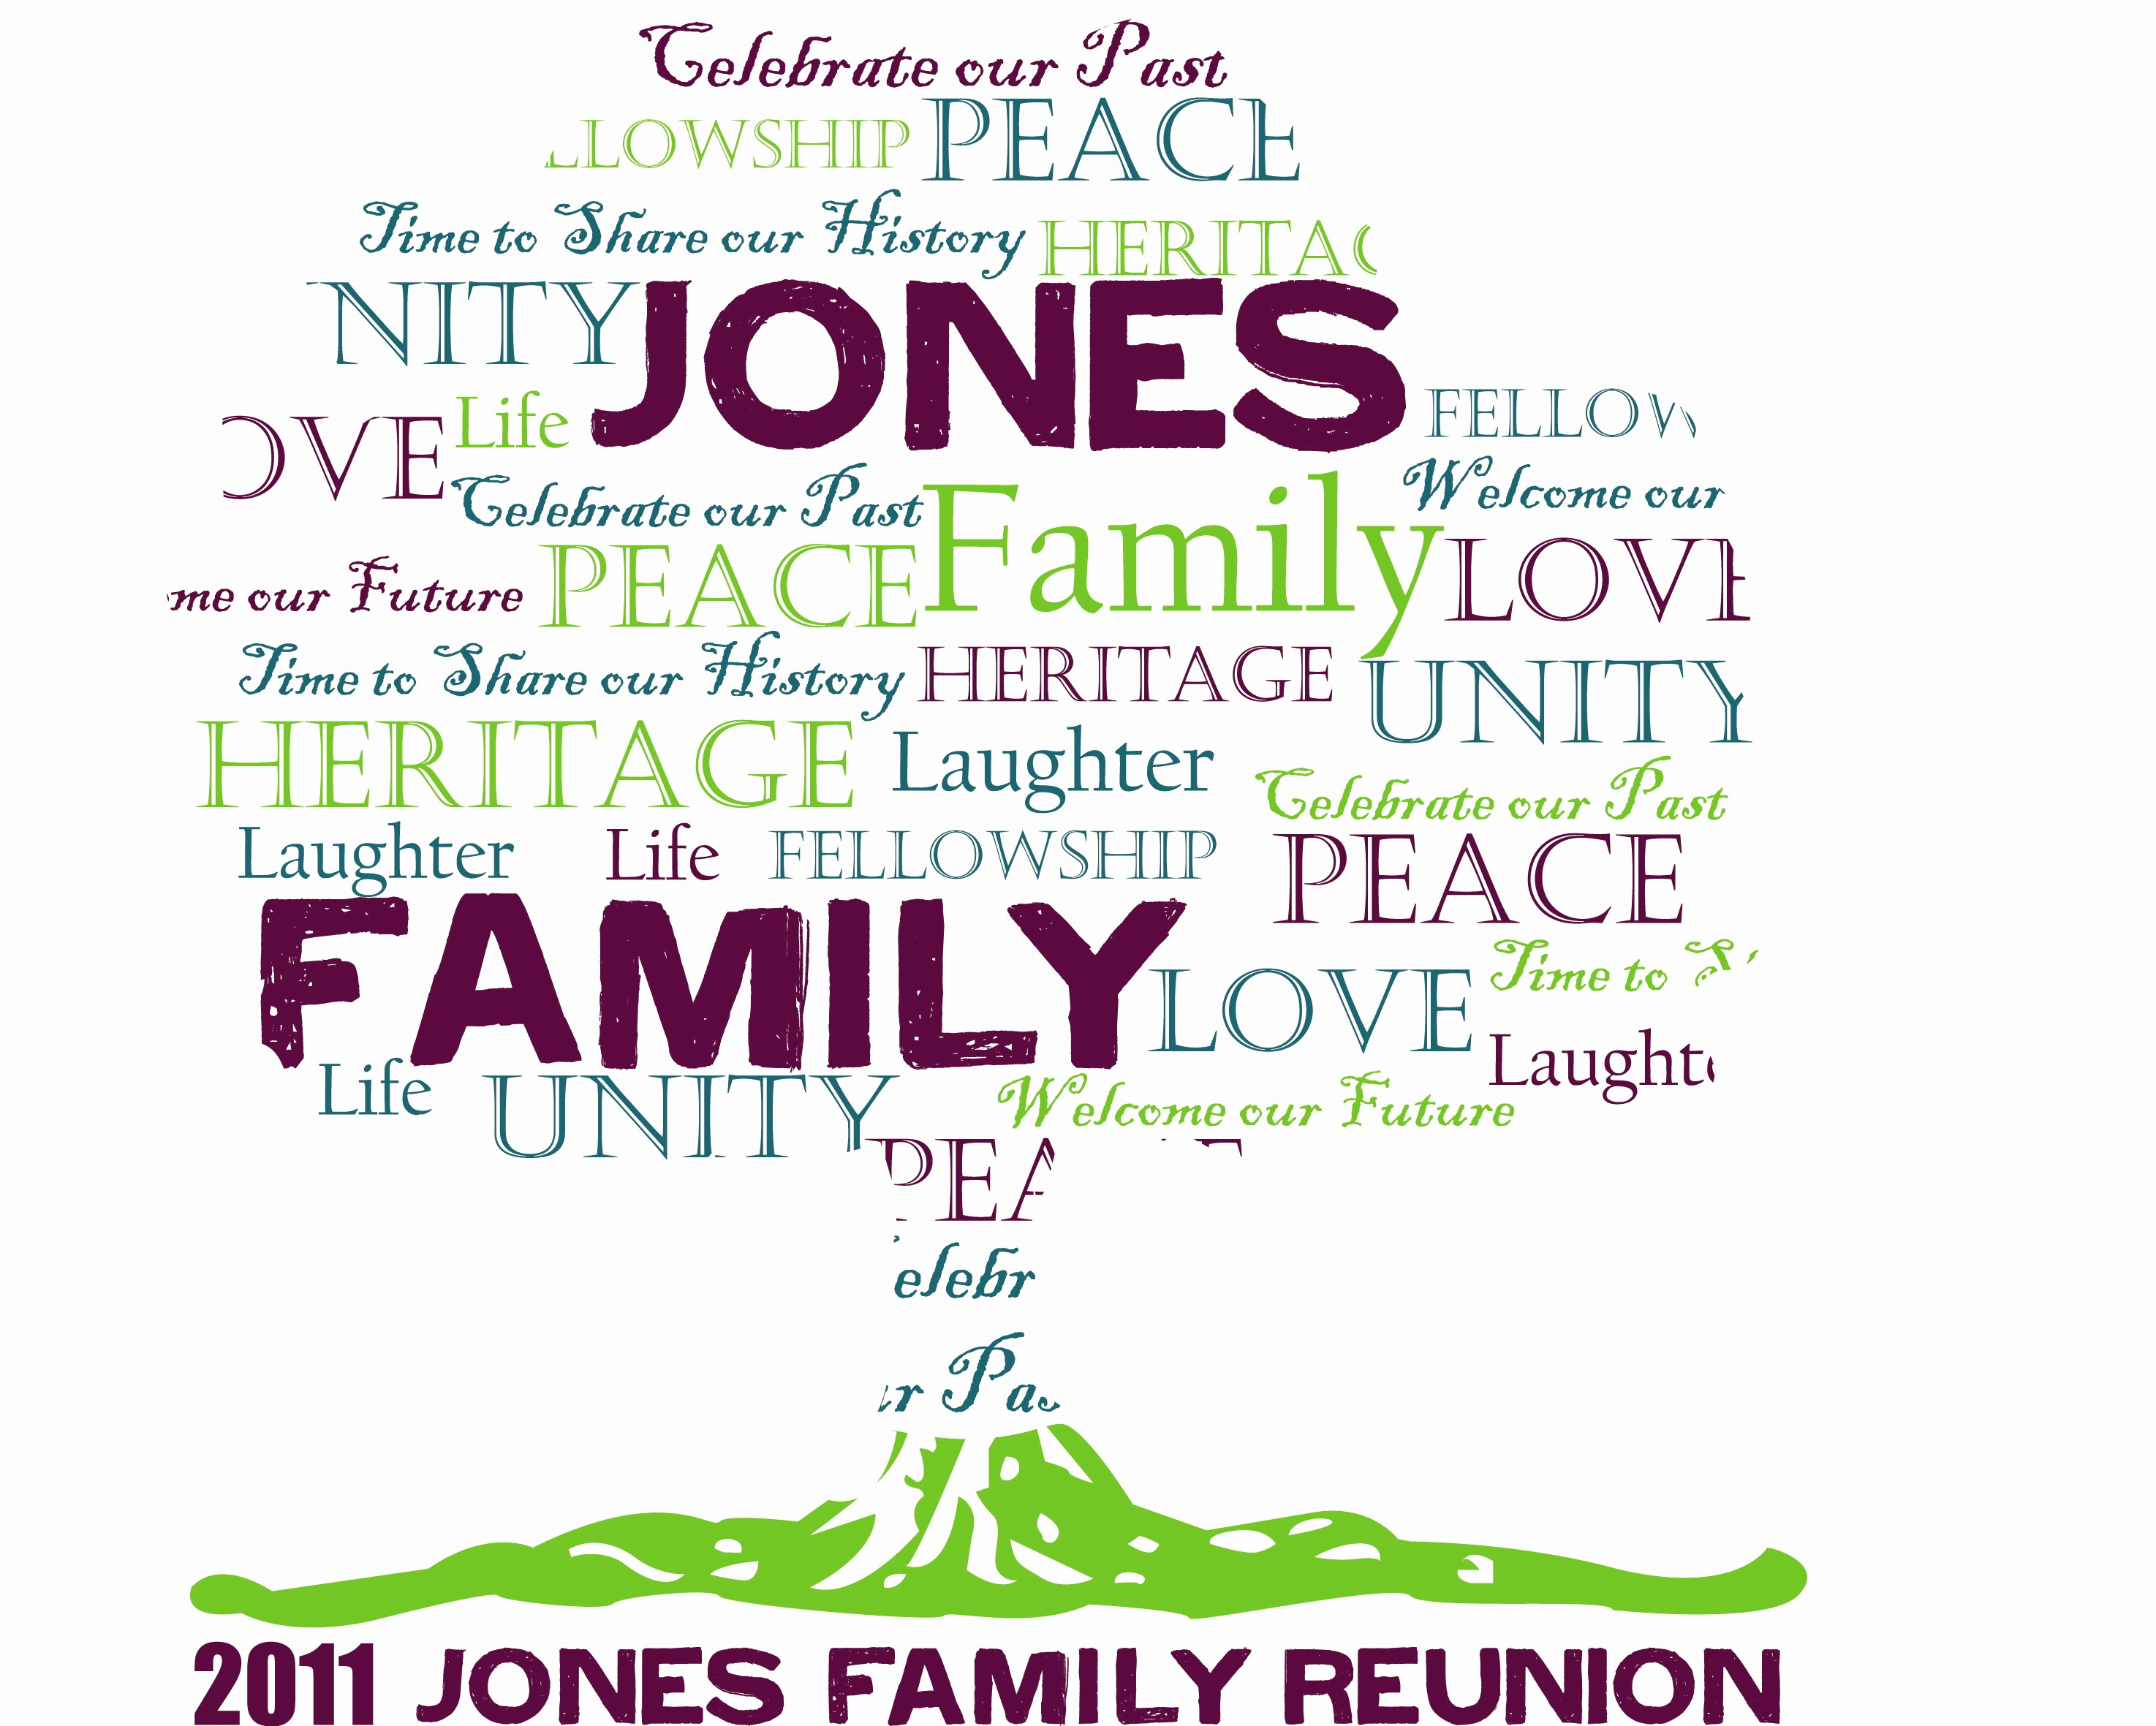 Free Family Reunion Flyers Templates New Family Reunion Invitation Template Portablegasgrillweber